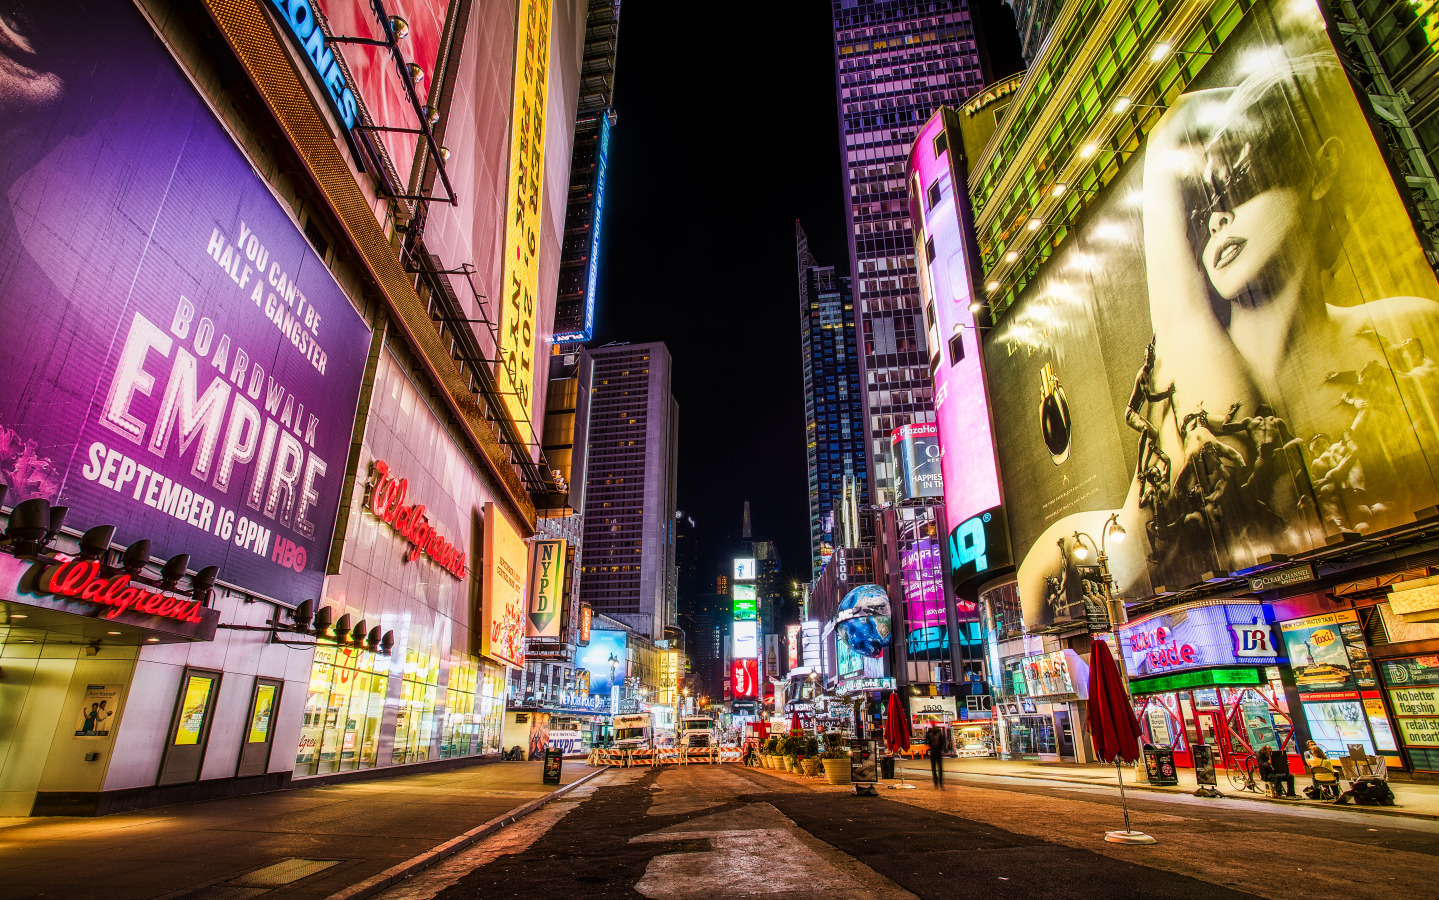 Commercial Real Estate & Retail News